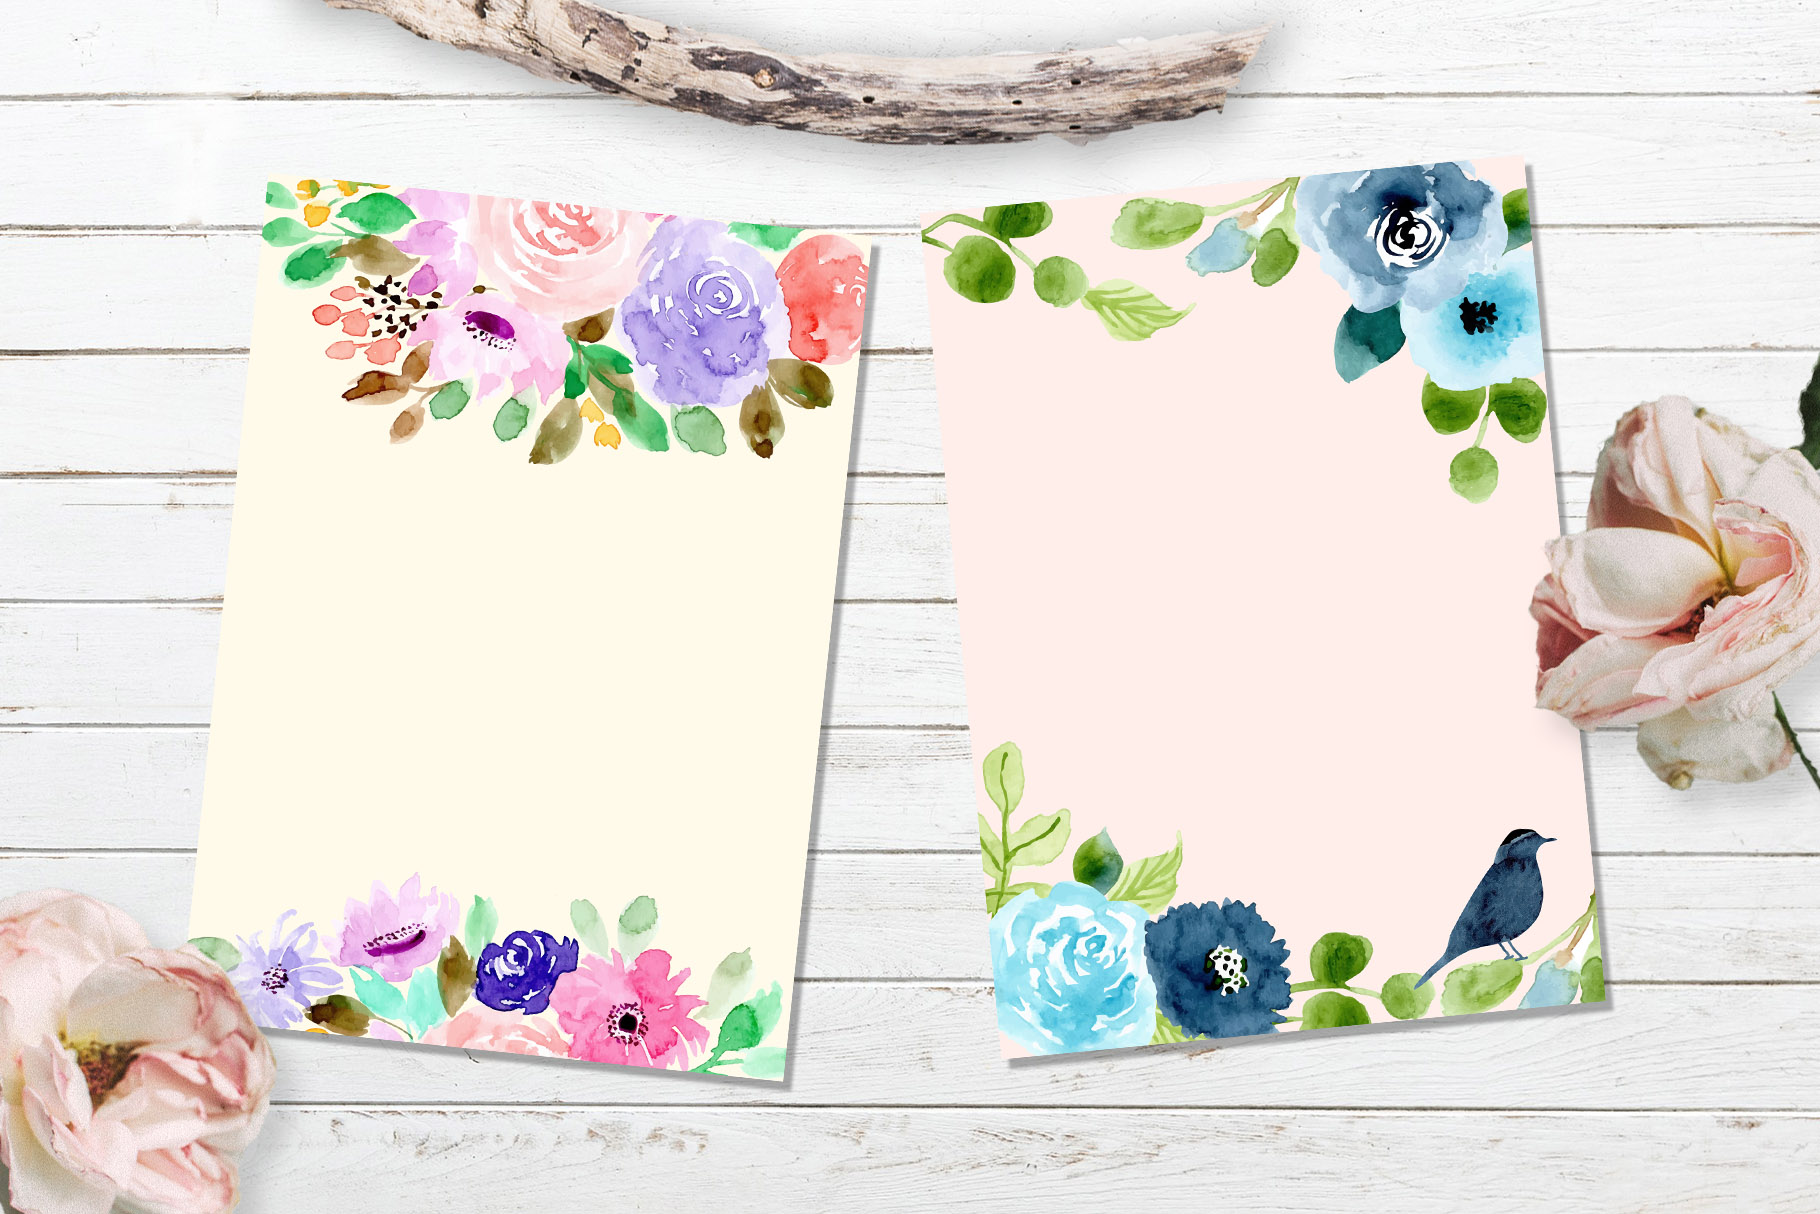 Floral Invitation Backgrounds Vol.3 example image 4